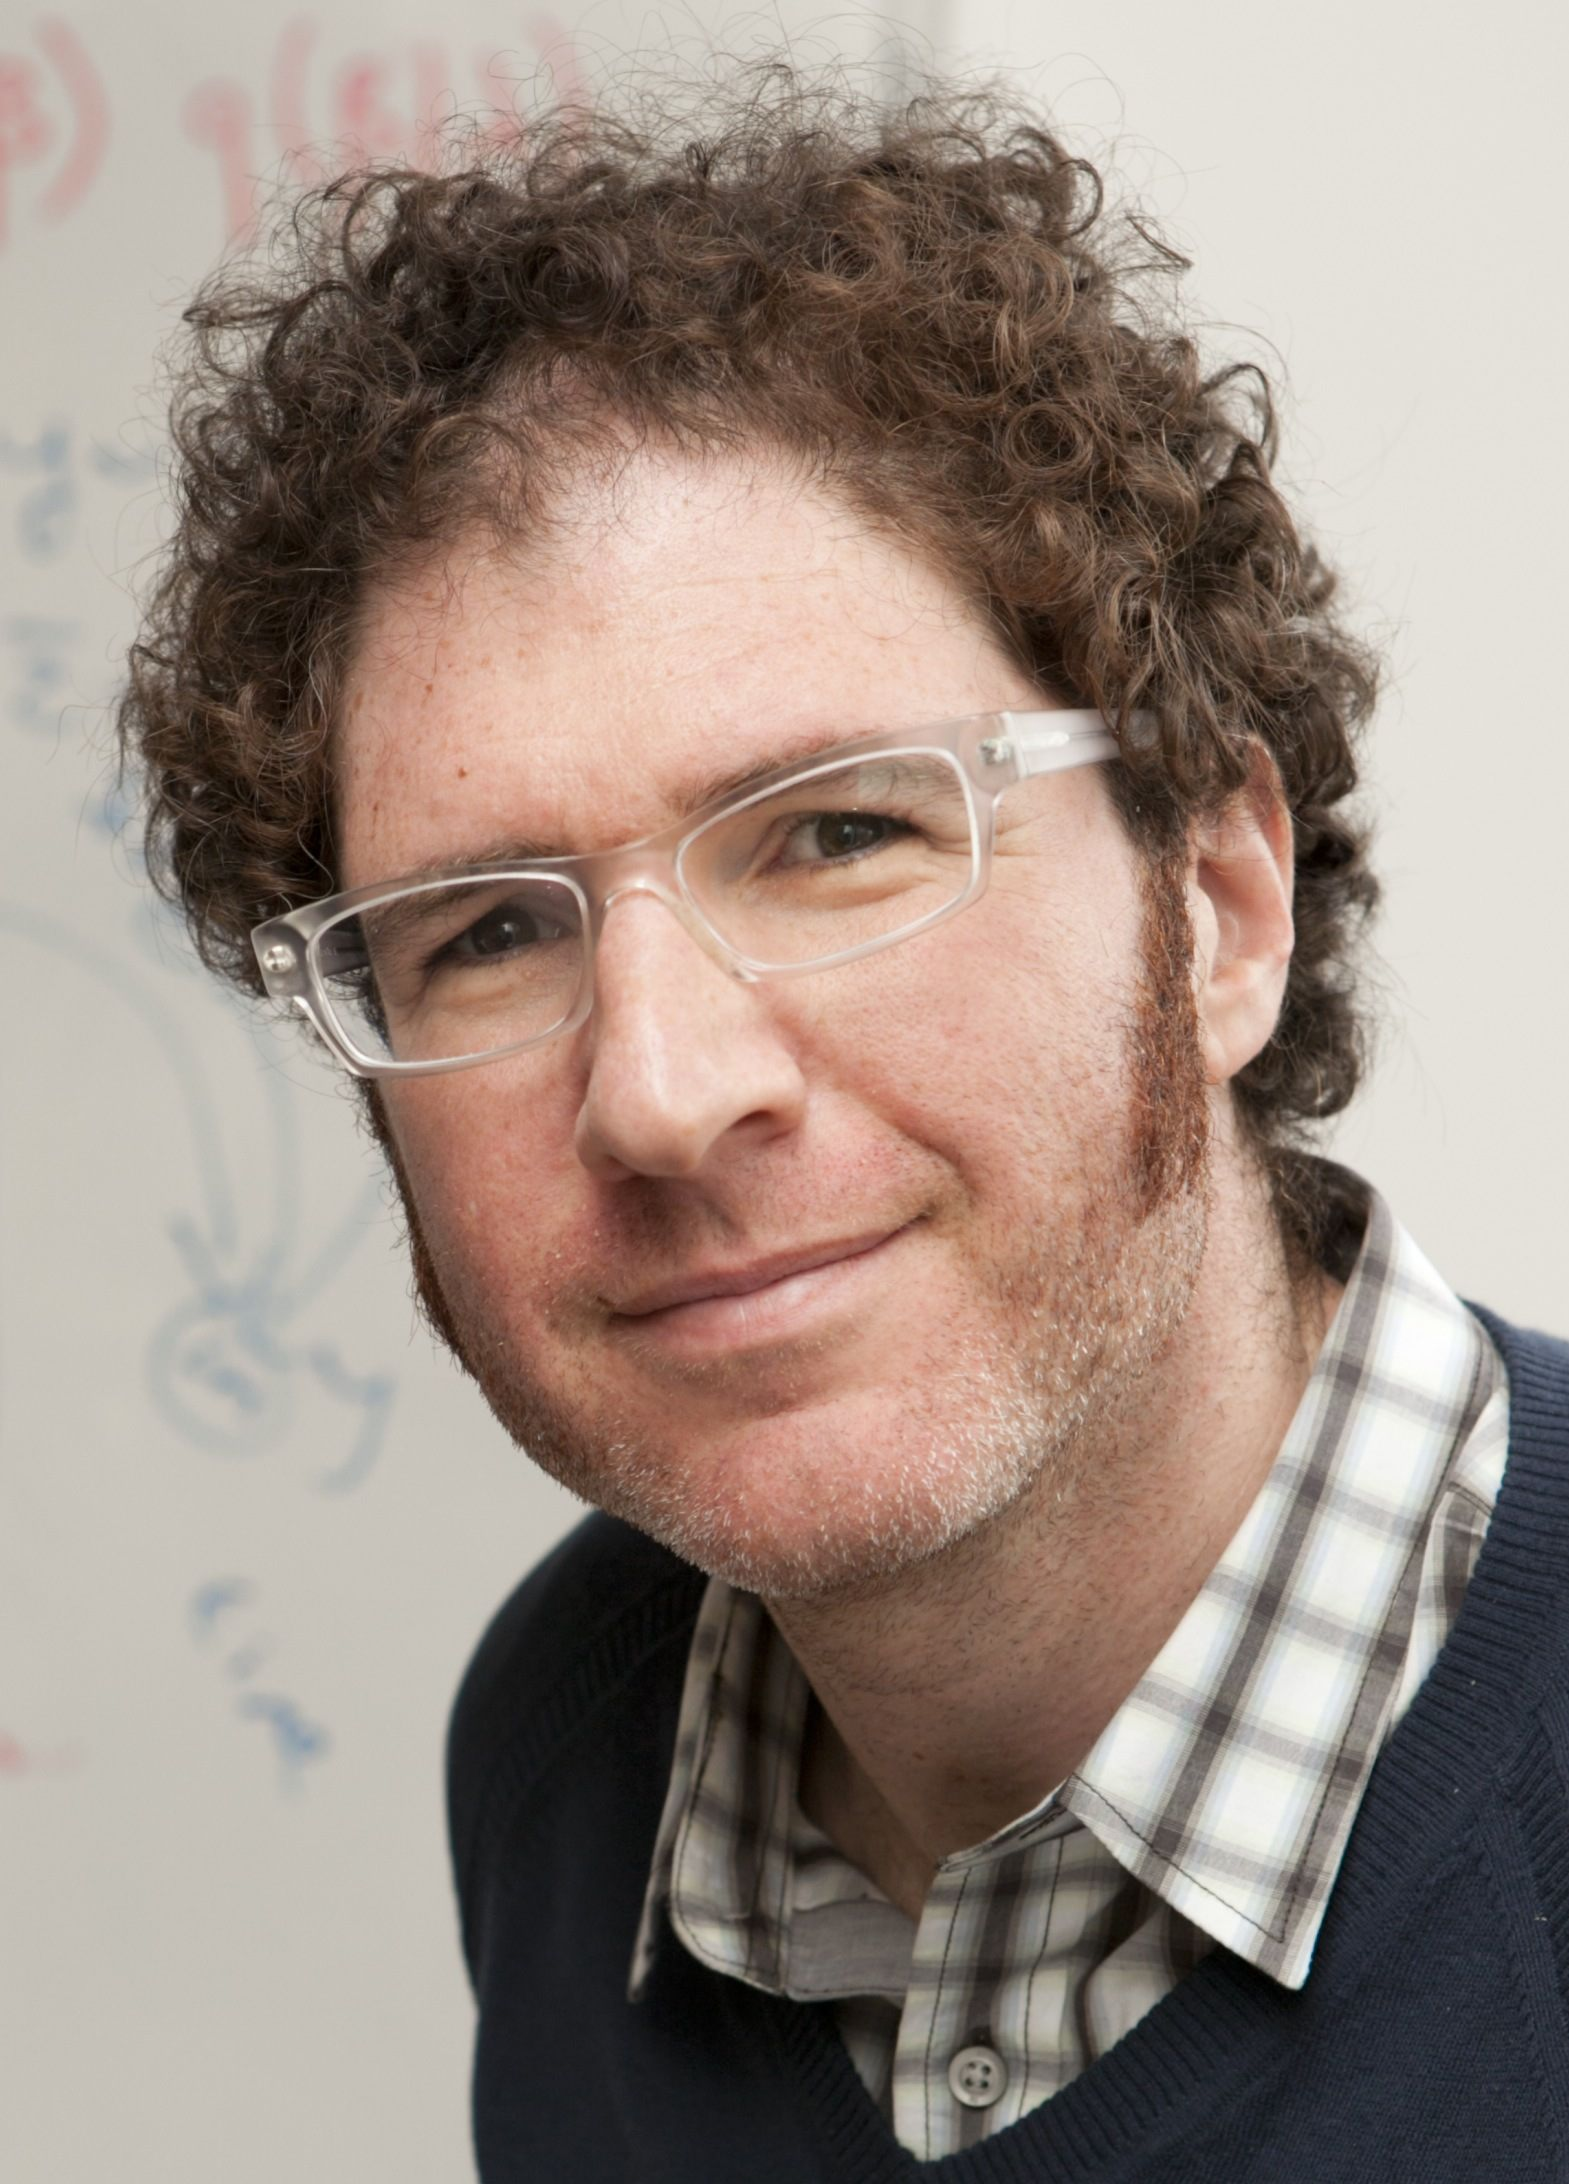 David Blei, Professor of Statistics and Computer Science at Columbia University, has been named Fellow of the Institute of Mathematical Statistics (IMS).